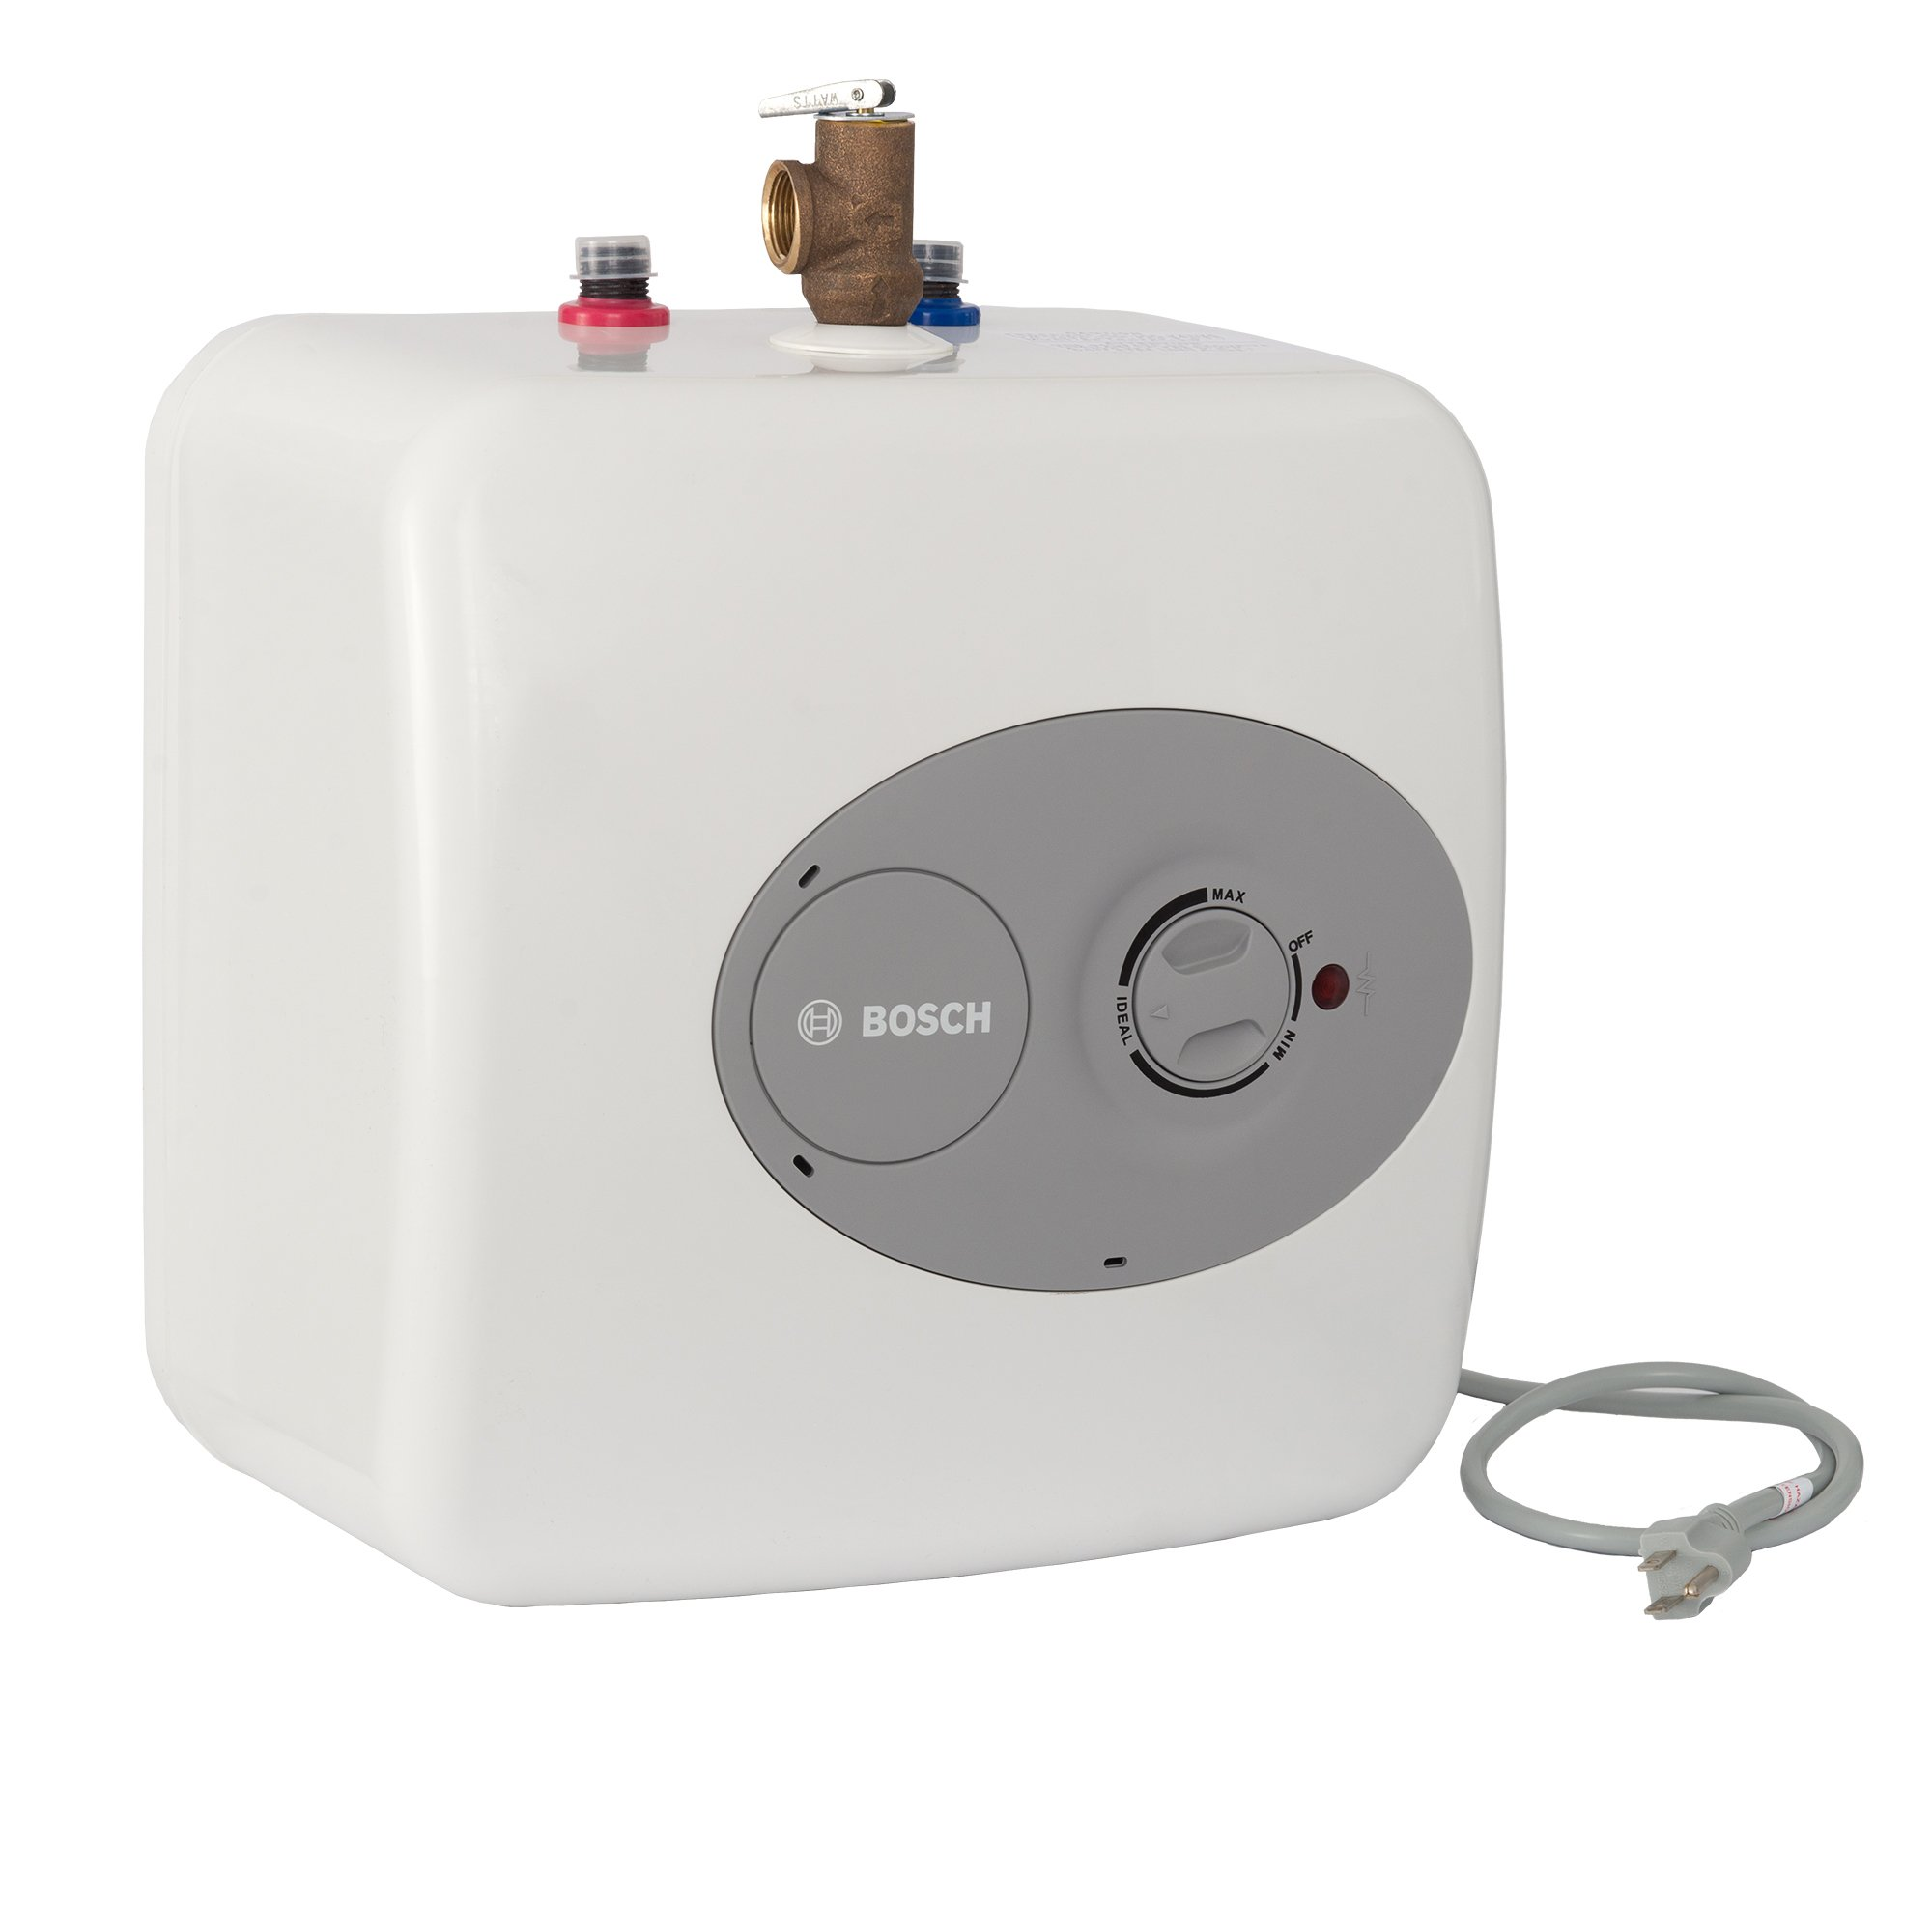 Bosch Tronic 3000 T 4-Gallon Electric Mini-Tank Water Heater by Bosch Thermotechnology